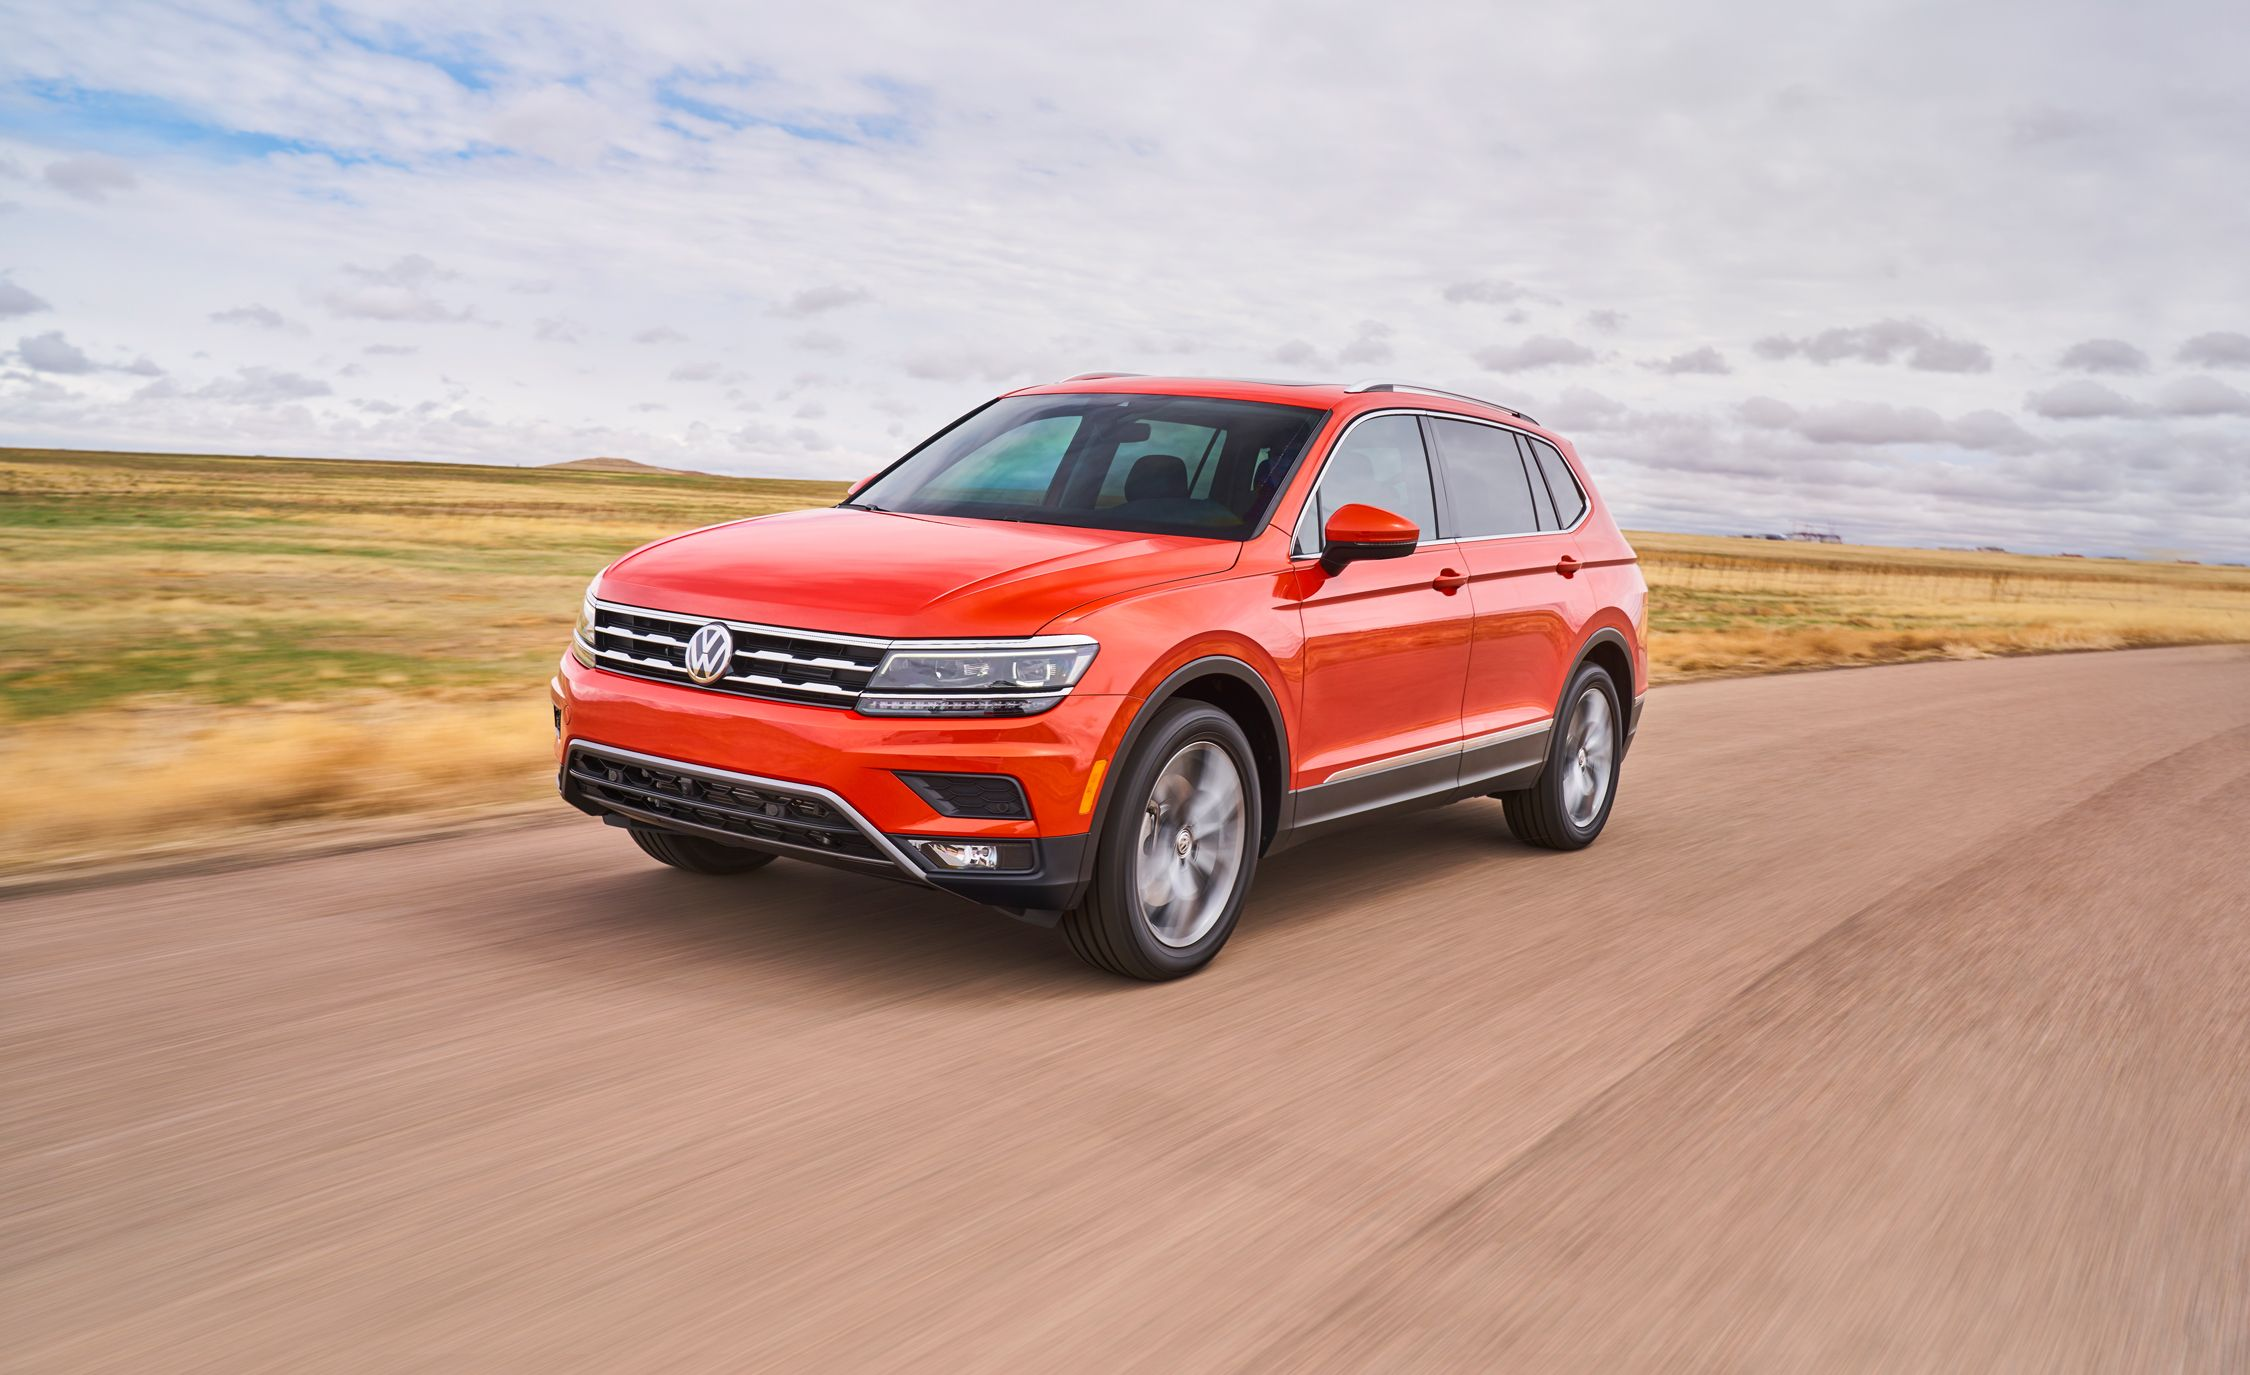 2018-volkswagen-tiguan-first-drive-review-car-and-driver-photo-684309-s-original Interesting Info About 2018 Vw Tiguan R Line with Mesmerizing Pictures Cars Review